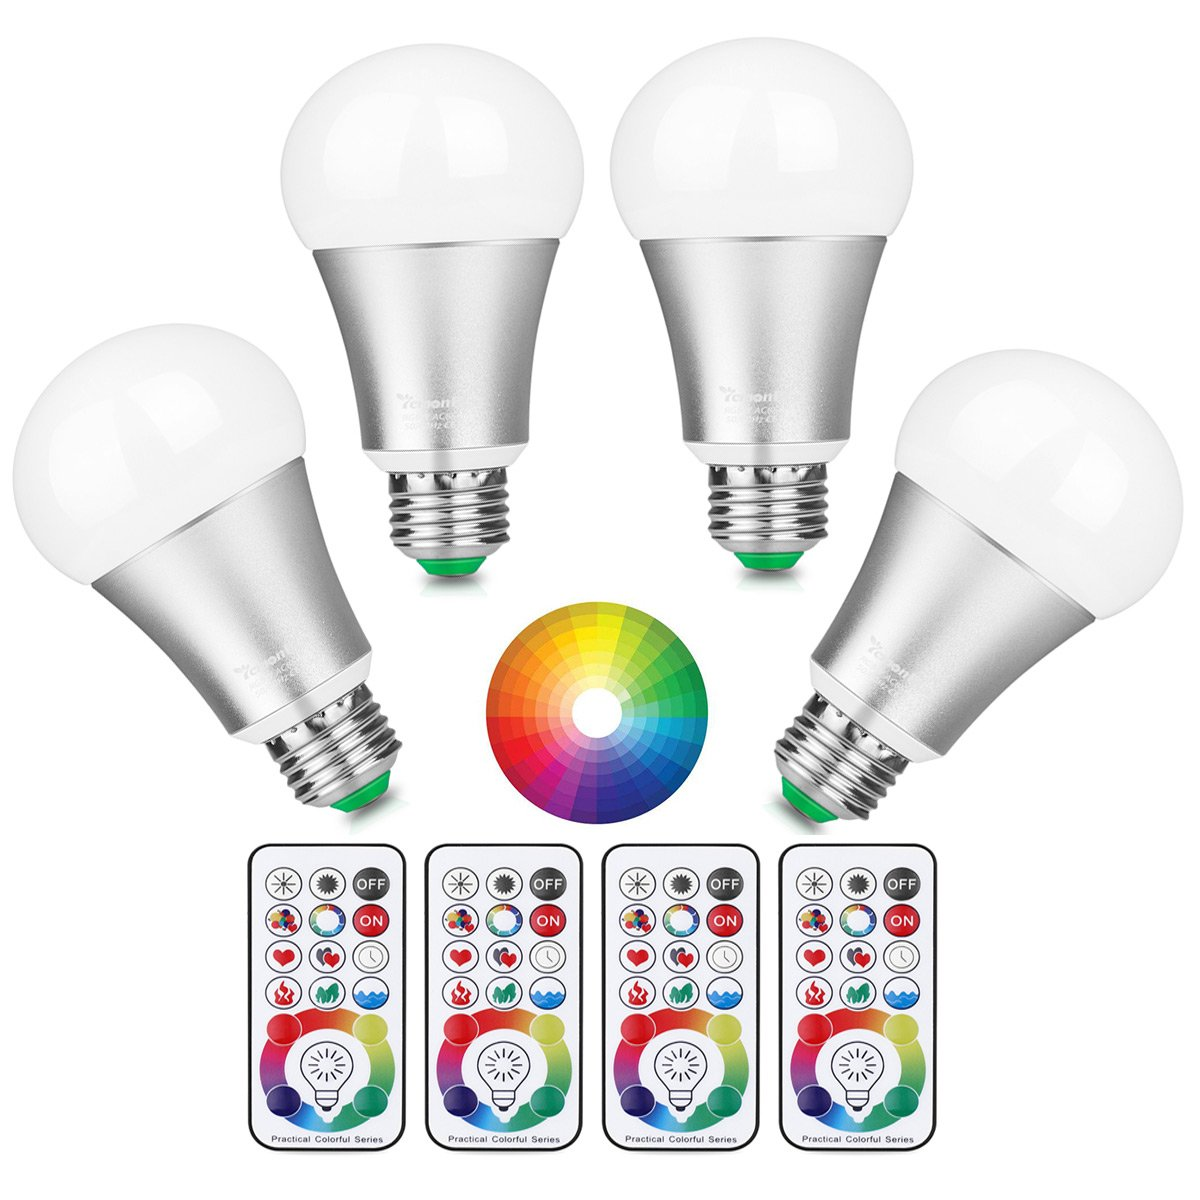 [Updated] Lemonbest 10W E27 Led Colour Changing Light Bulb with Remote Control, 120 Different Colour Choices, RGB+Daylight(6500K) Dimmable, Timming, Dual Memory DIY Collection Function, Pack of 4X ONEVER